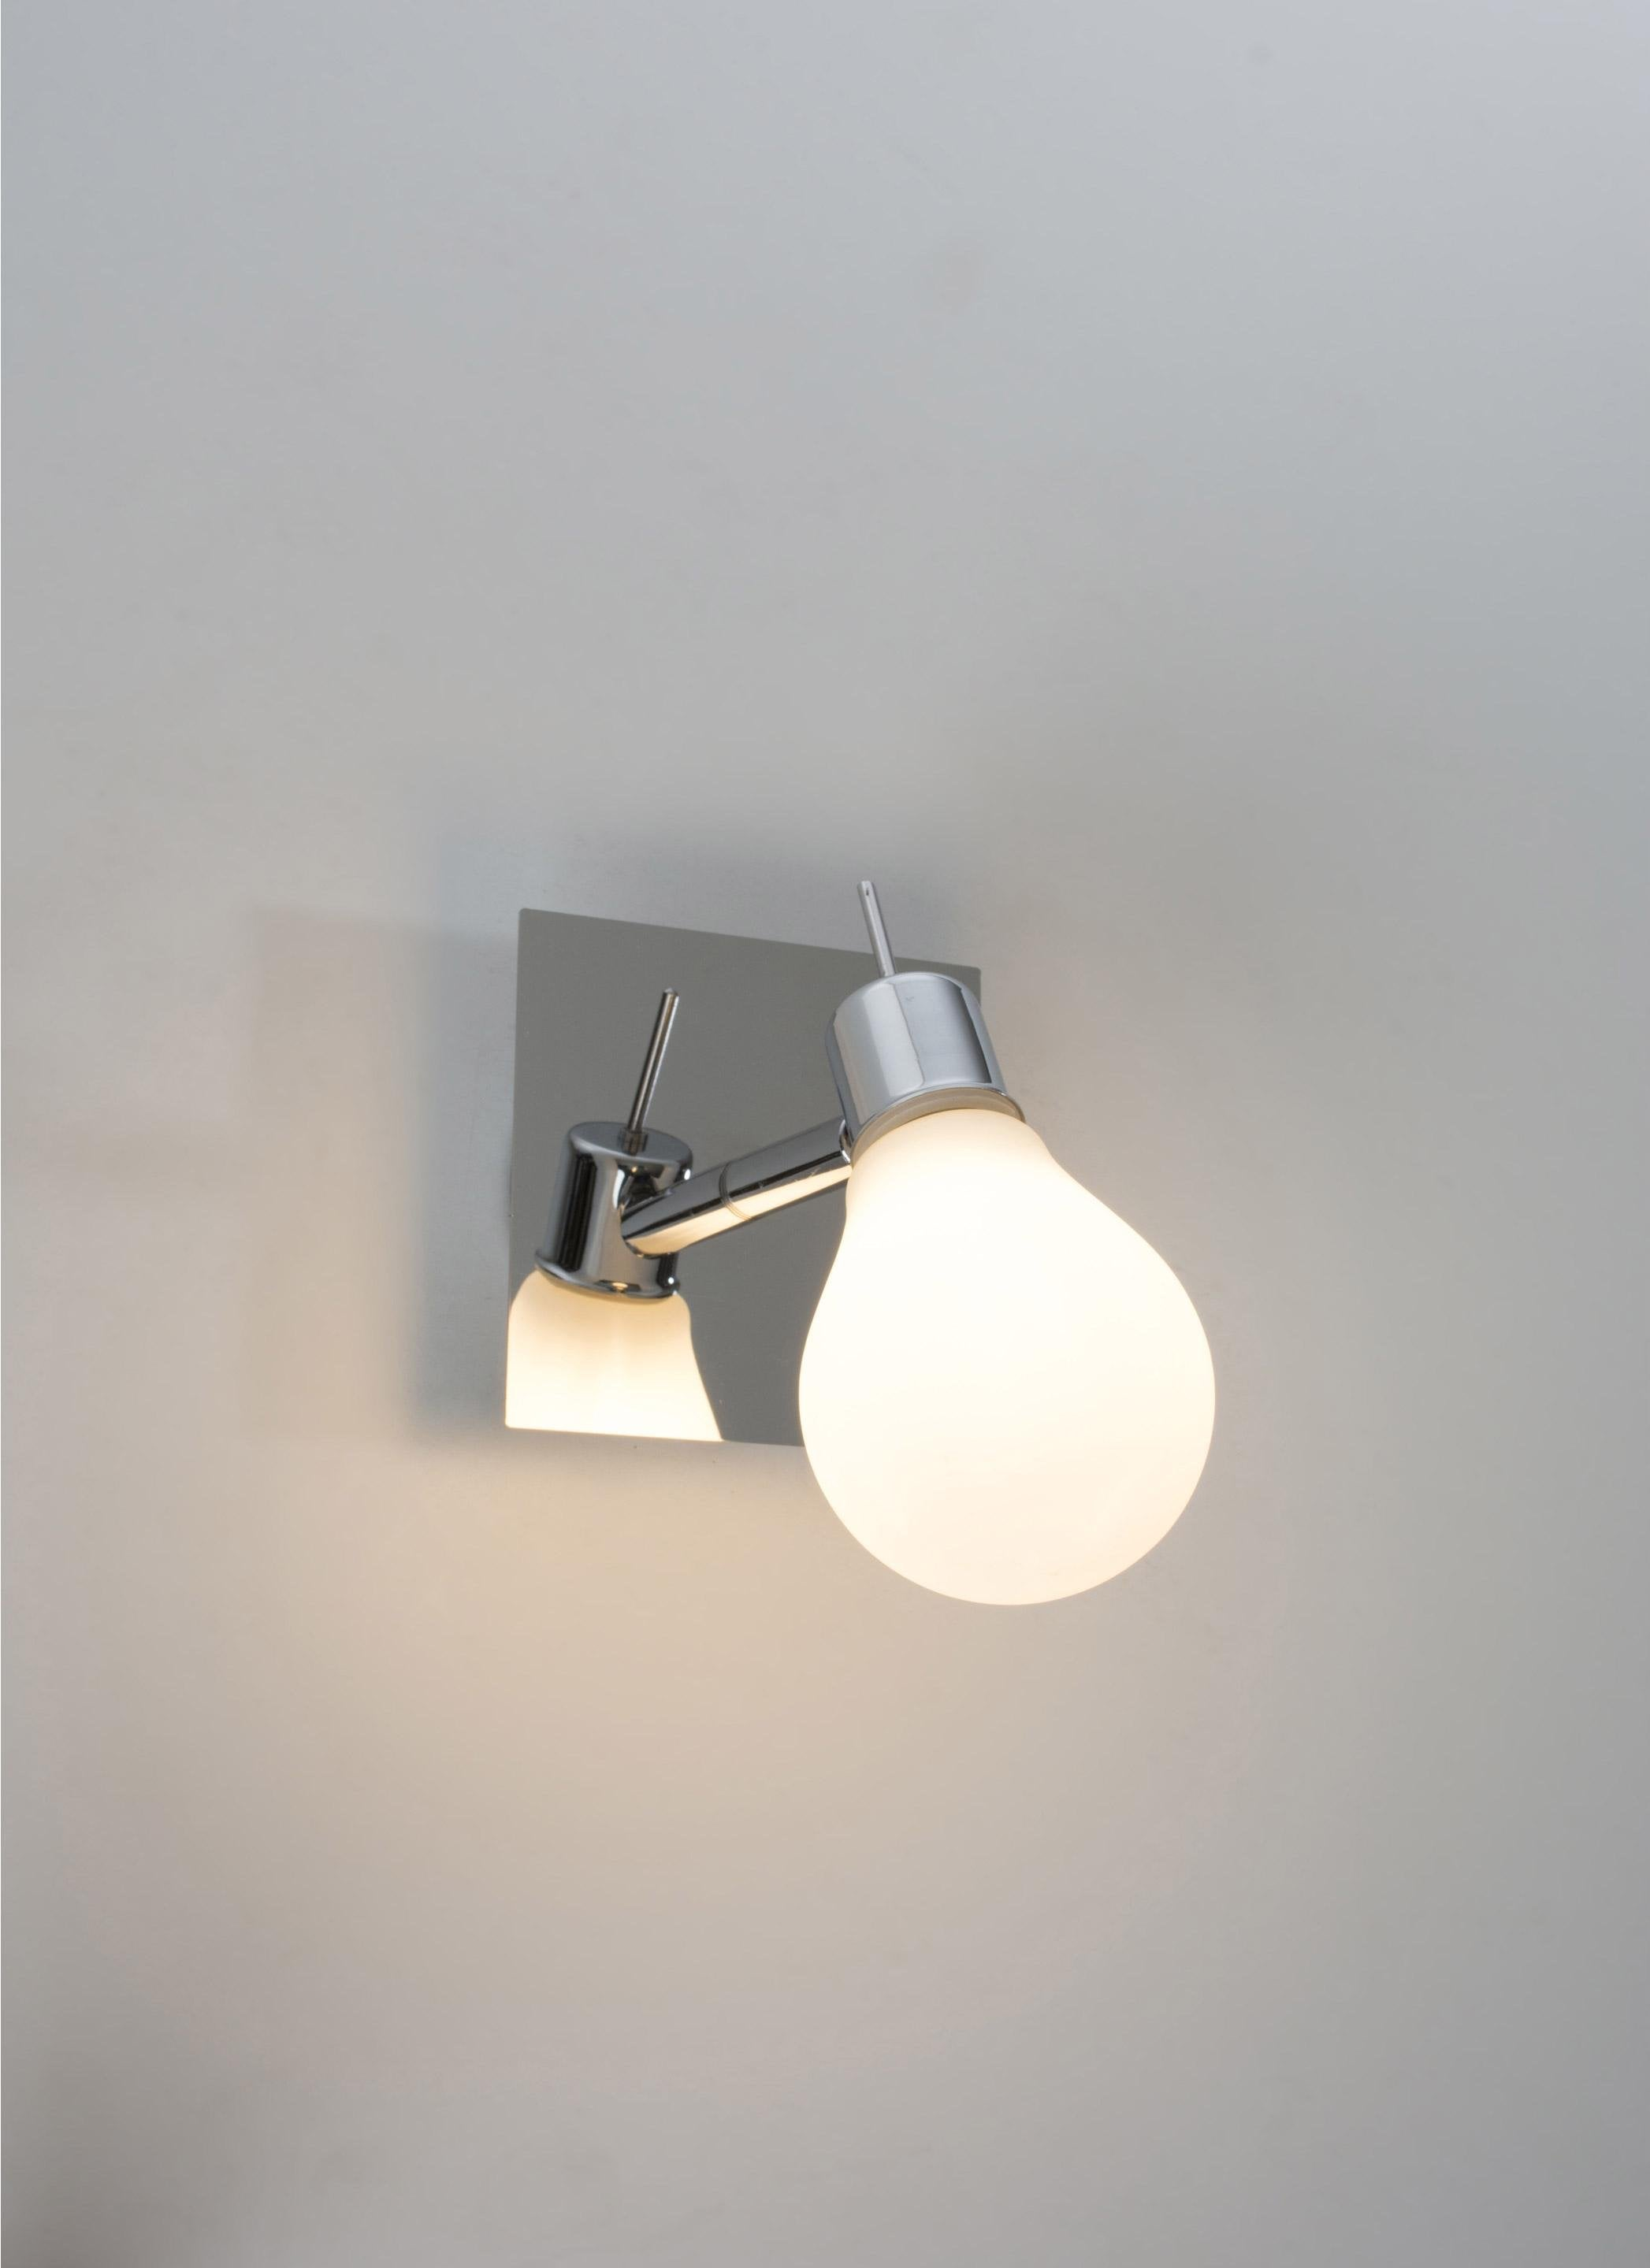 Applique Edison, LED 1 x 3.5 W, G9 blanc chaud